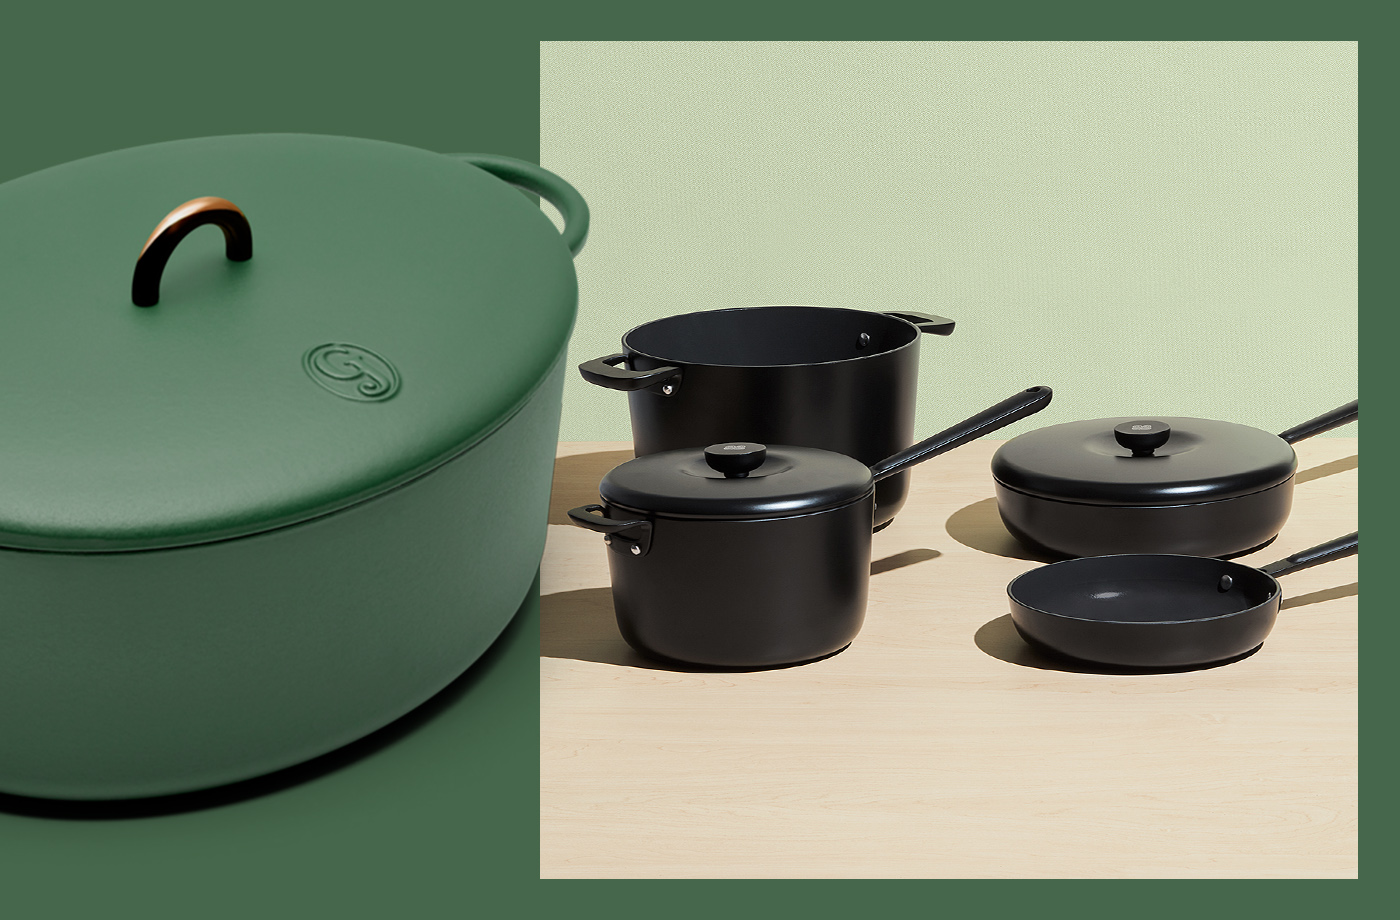 Thumbnail for I've Tried Every Instagram Cookware Brand There Is, and This Is My Definitive Ranking